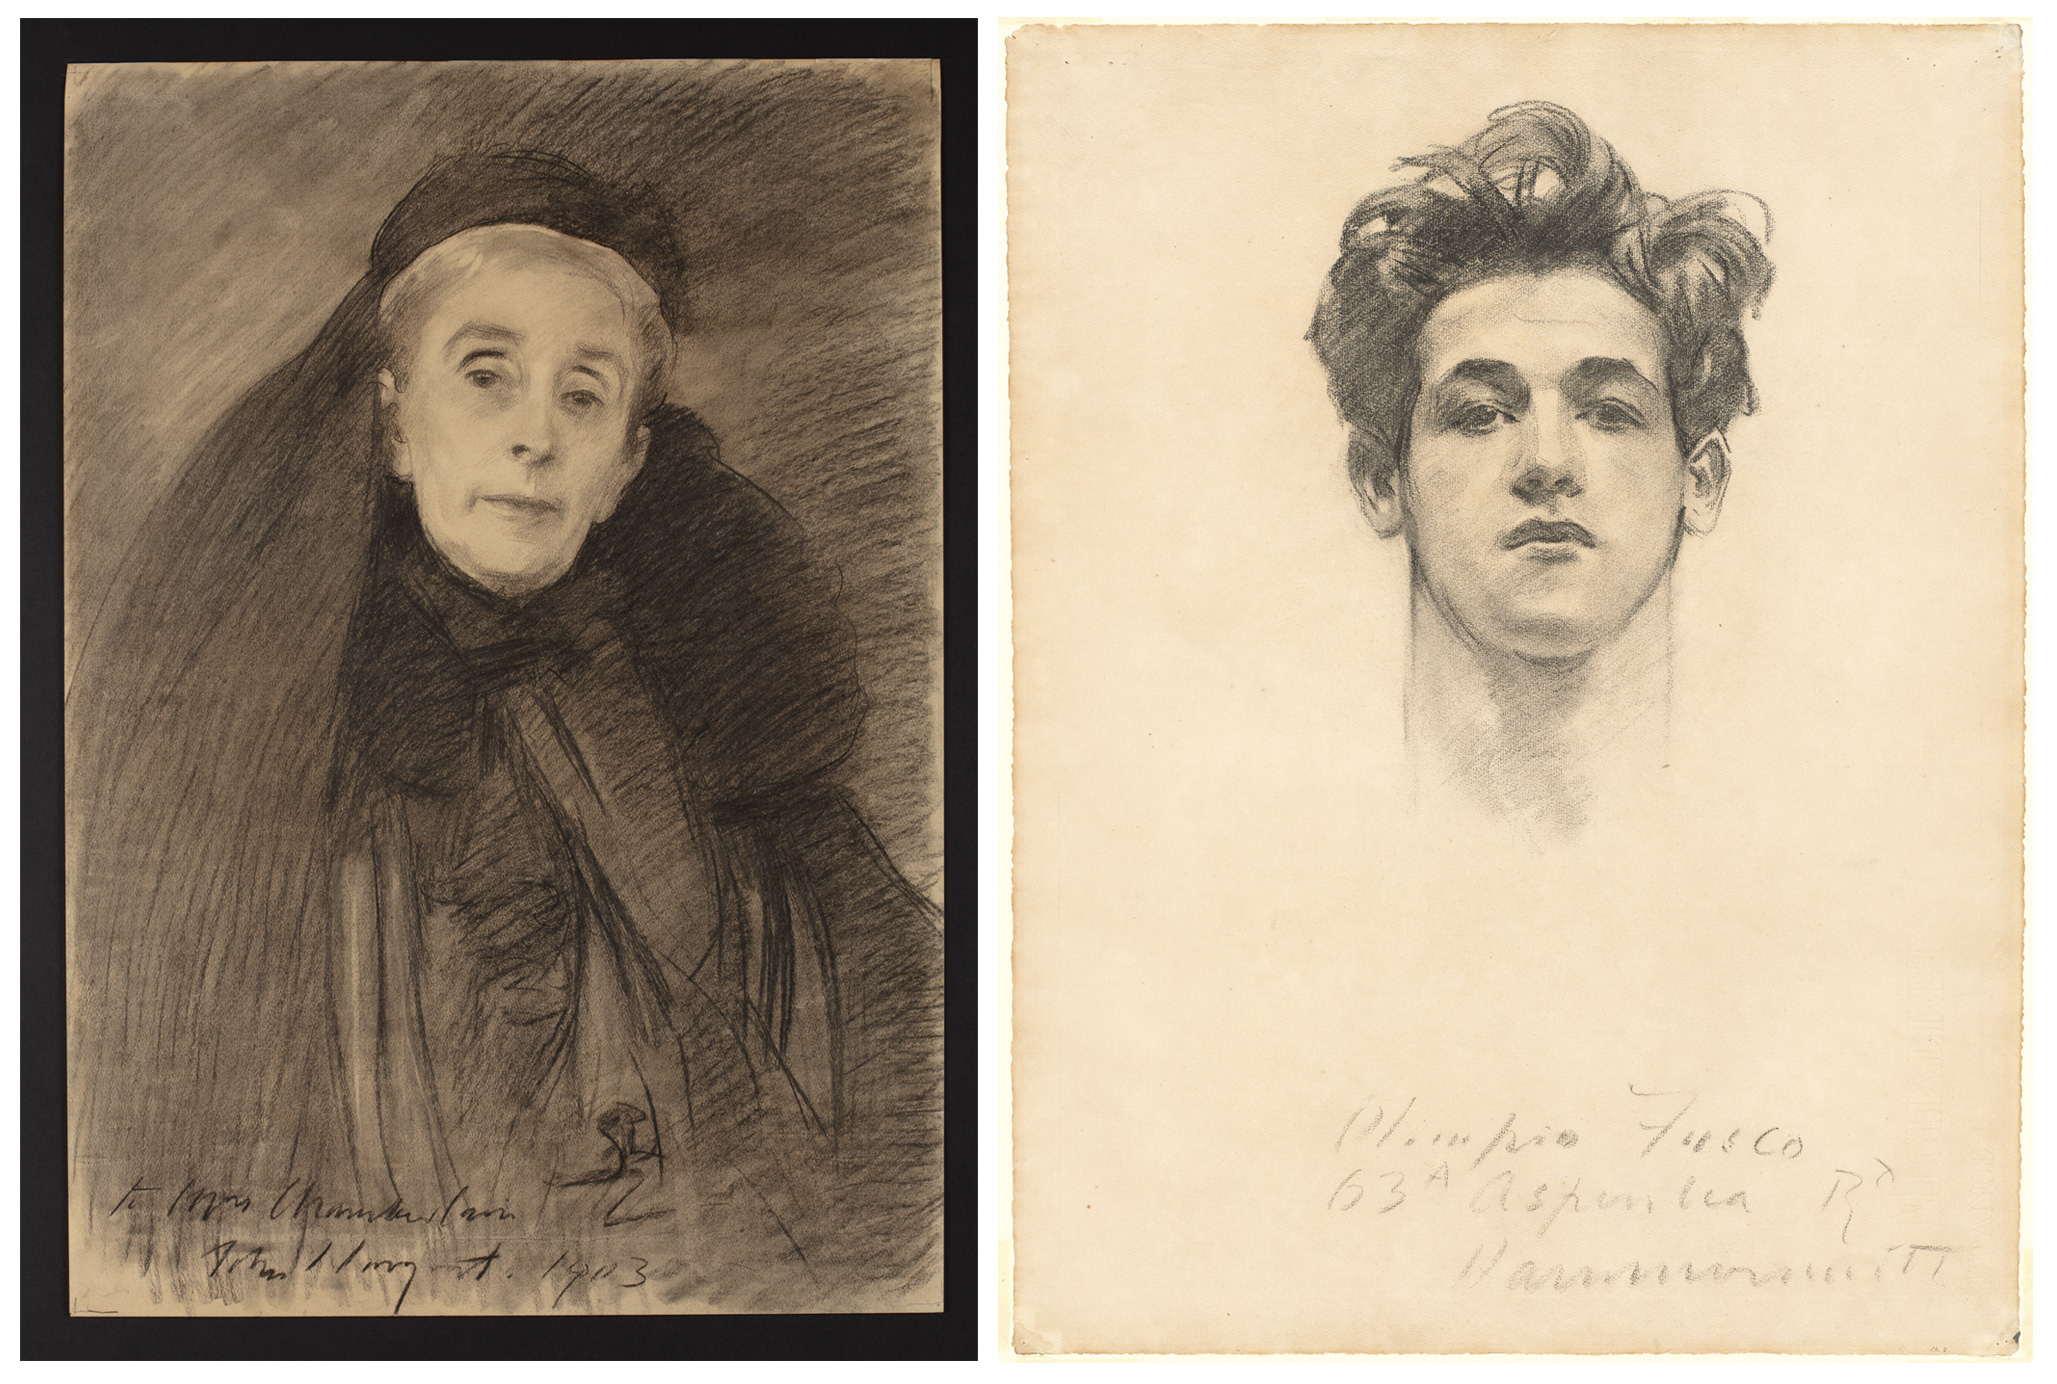 nationalreview.com - Brian T. Allen - John Singer Sargent's Many Beauties, Male and Female, at the Morgan Library